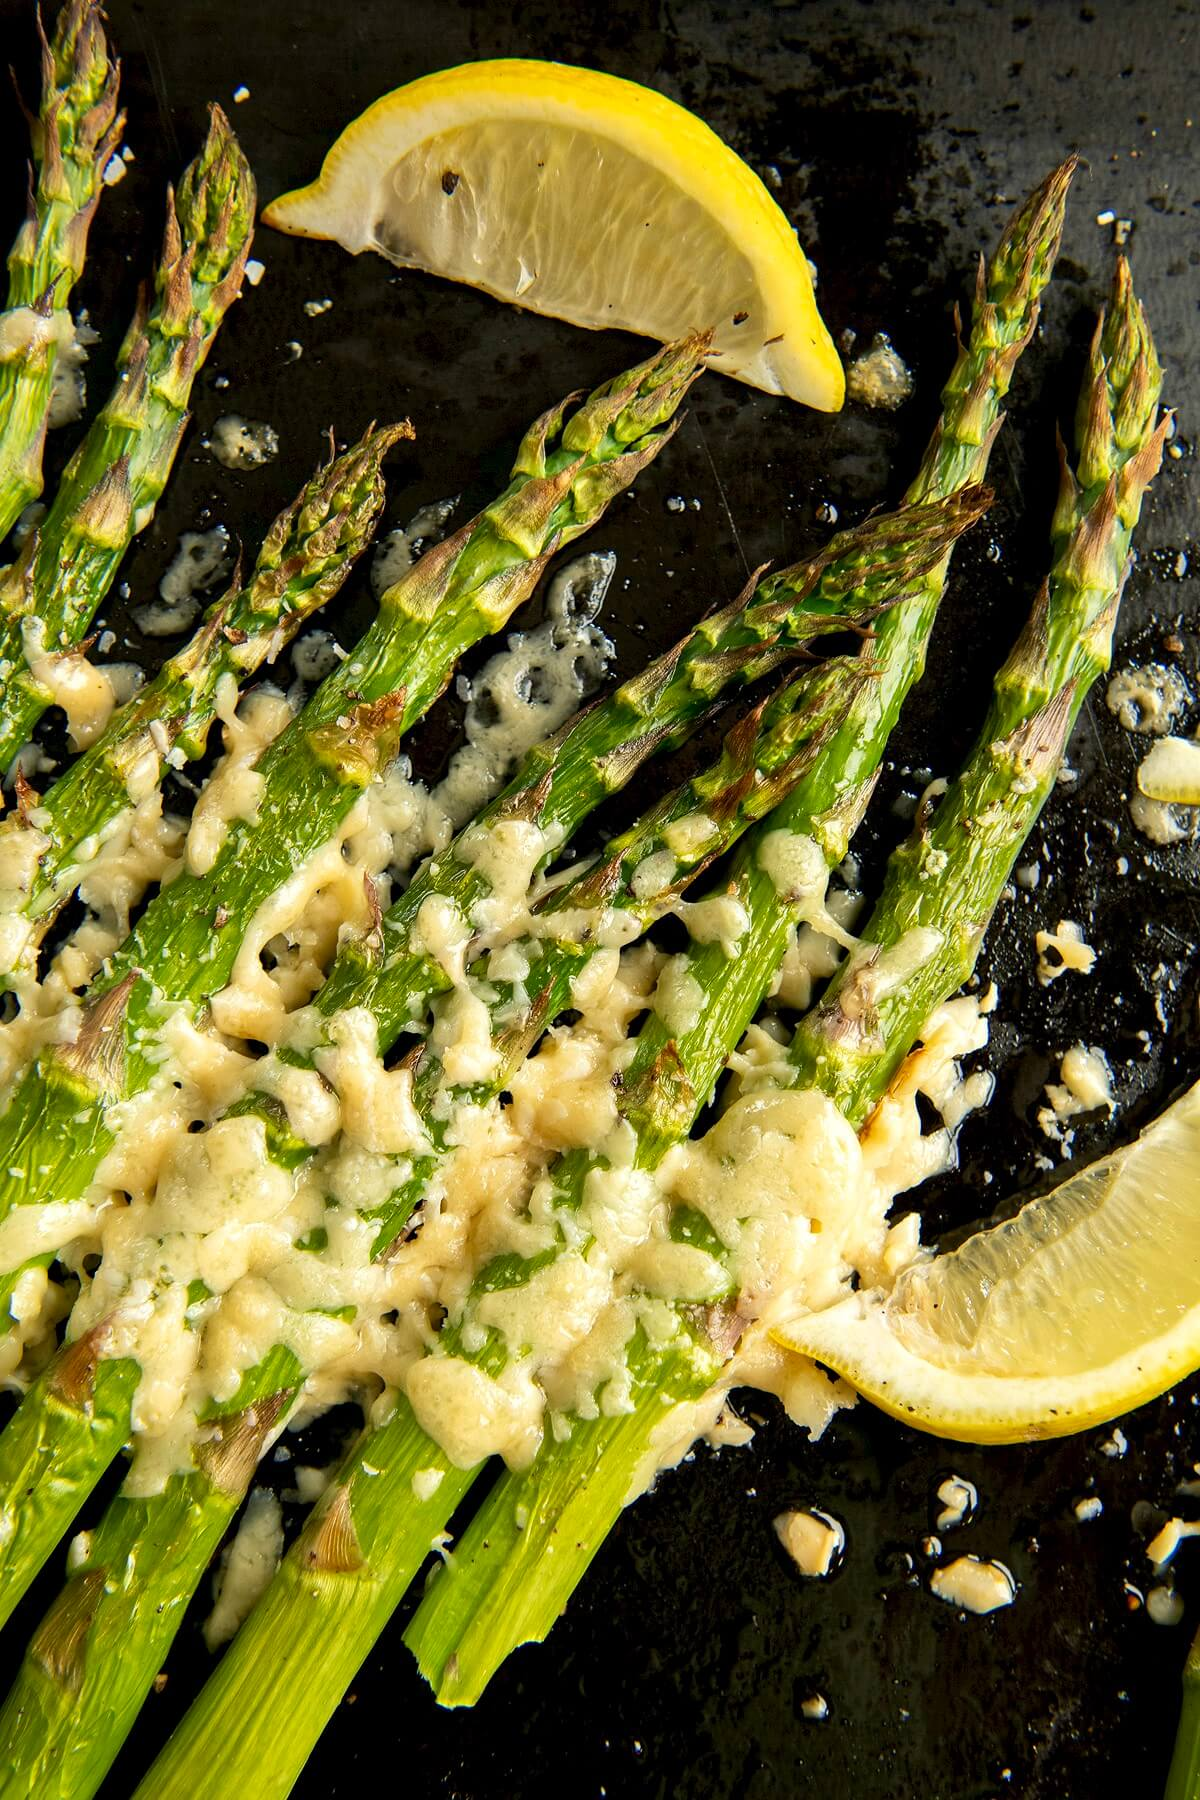 Asiago cheese provides a delightful alternative to Parmesan, adding a unique twist to simply roasted asparagus. The flavor of this side dishes belies its ease. Lemon slices make a pretty garnish.